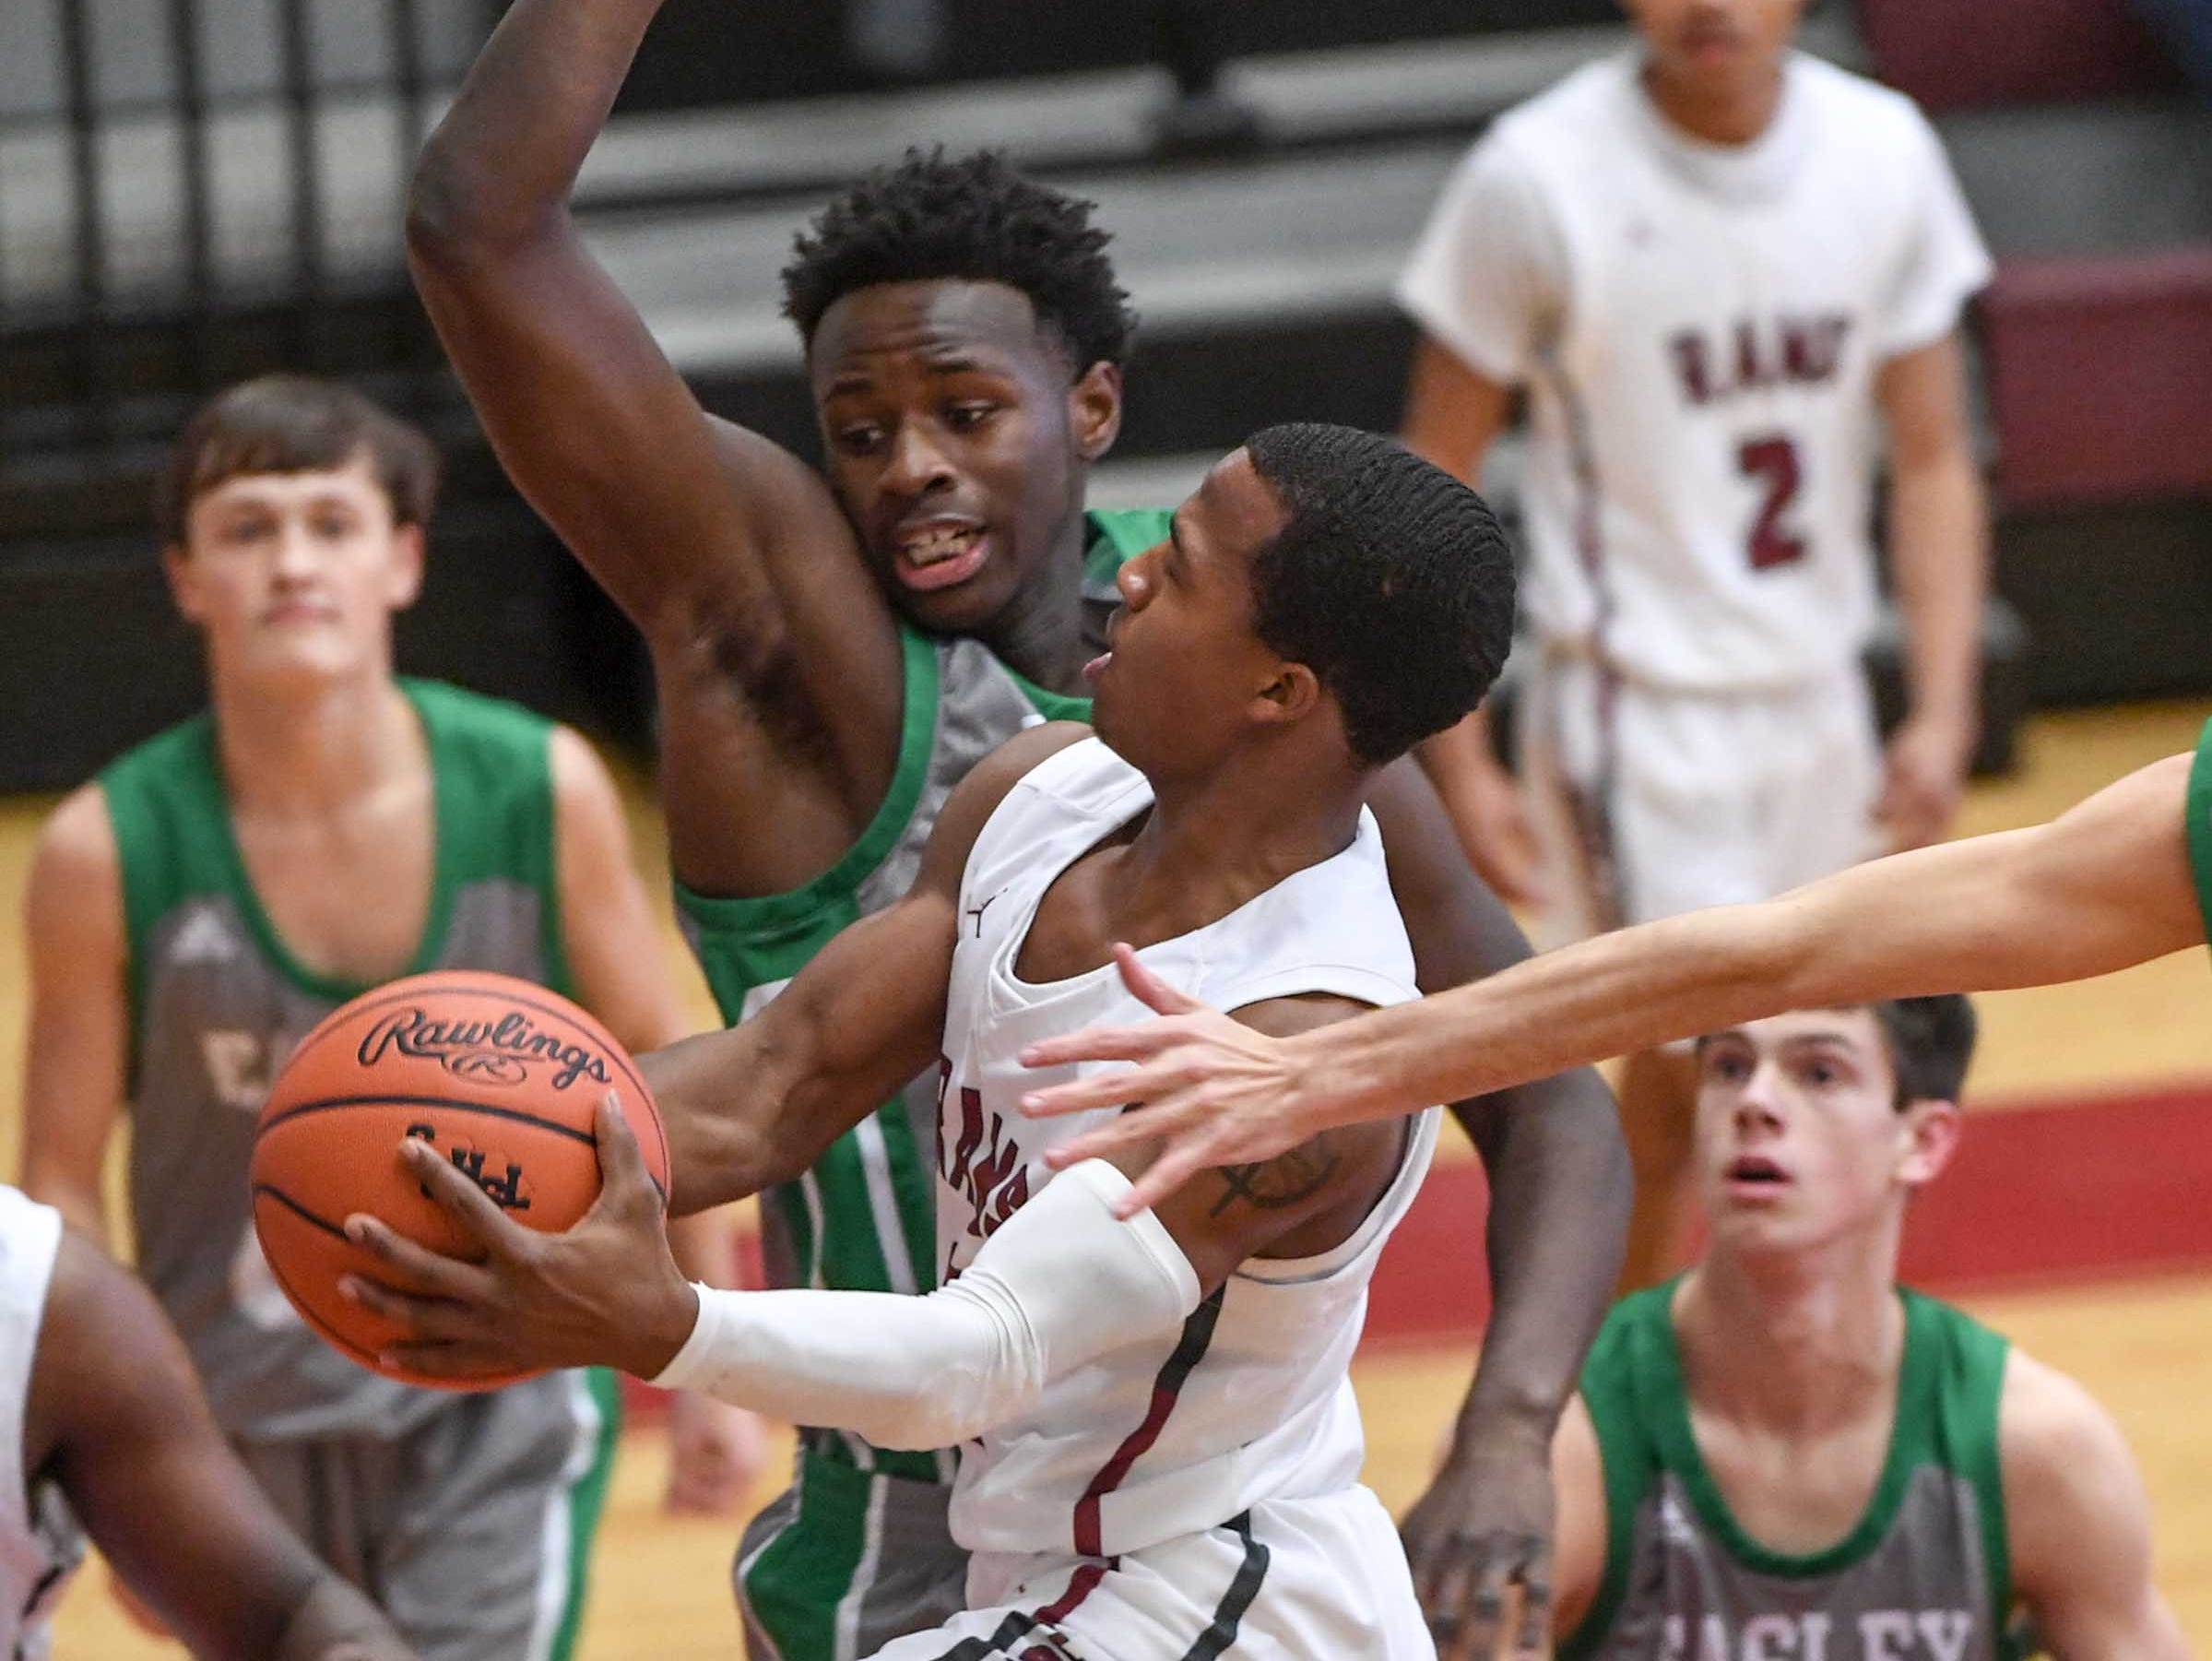 Westside senior Traye Carson(3) scores near Easley senior Griffin Smith(3) during the first quarter at Westside High School in Anderson on Friday. Carson reached 1,000 career points in the first quarter.